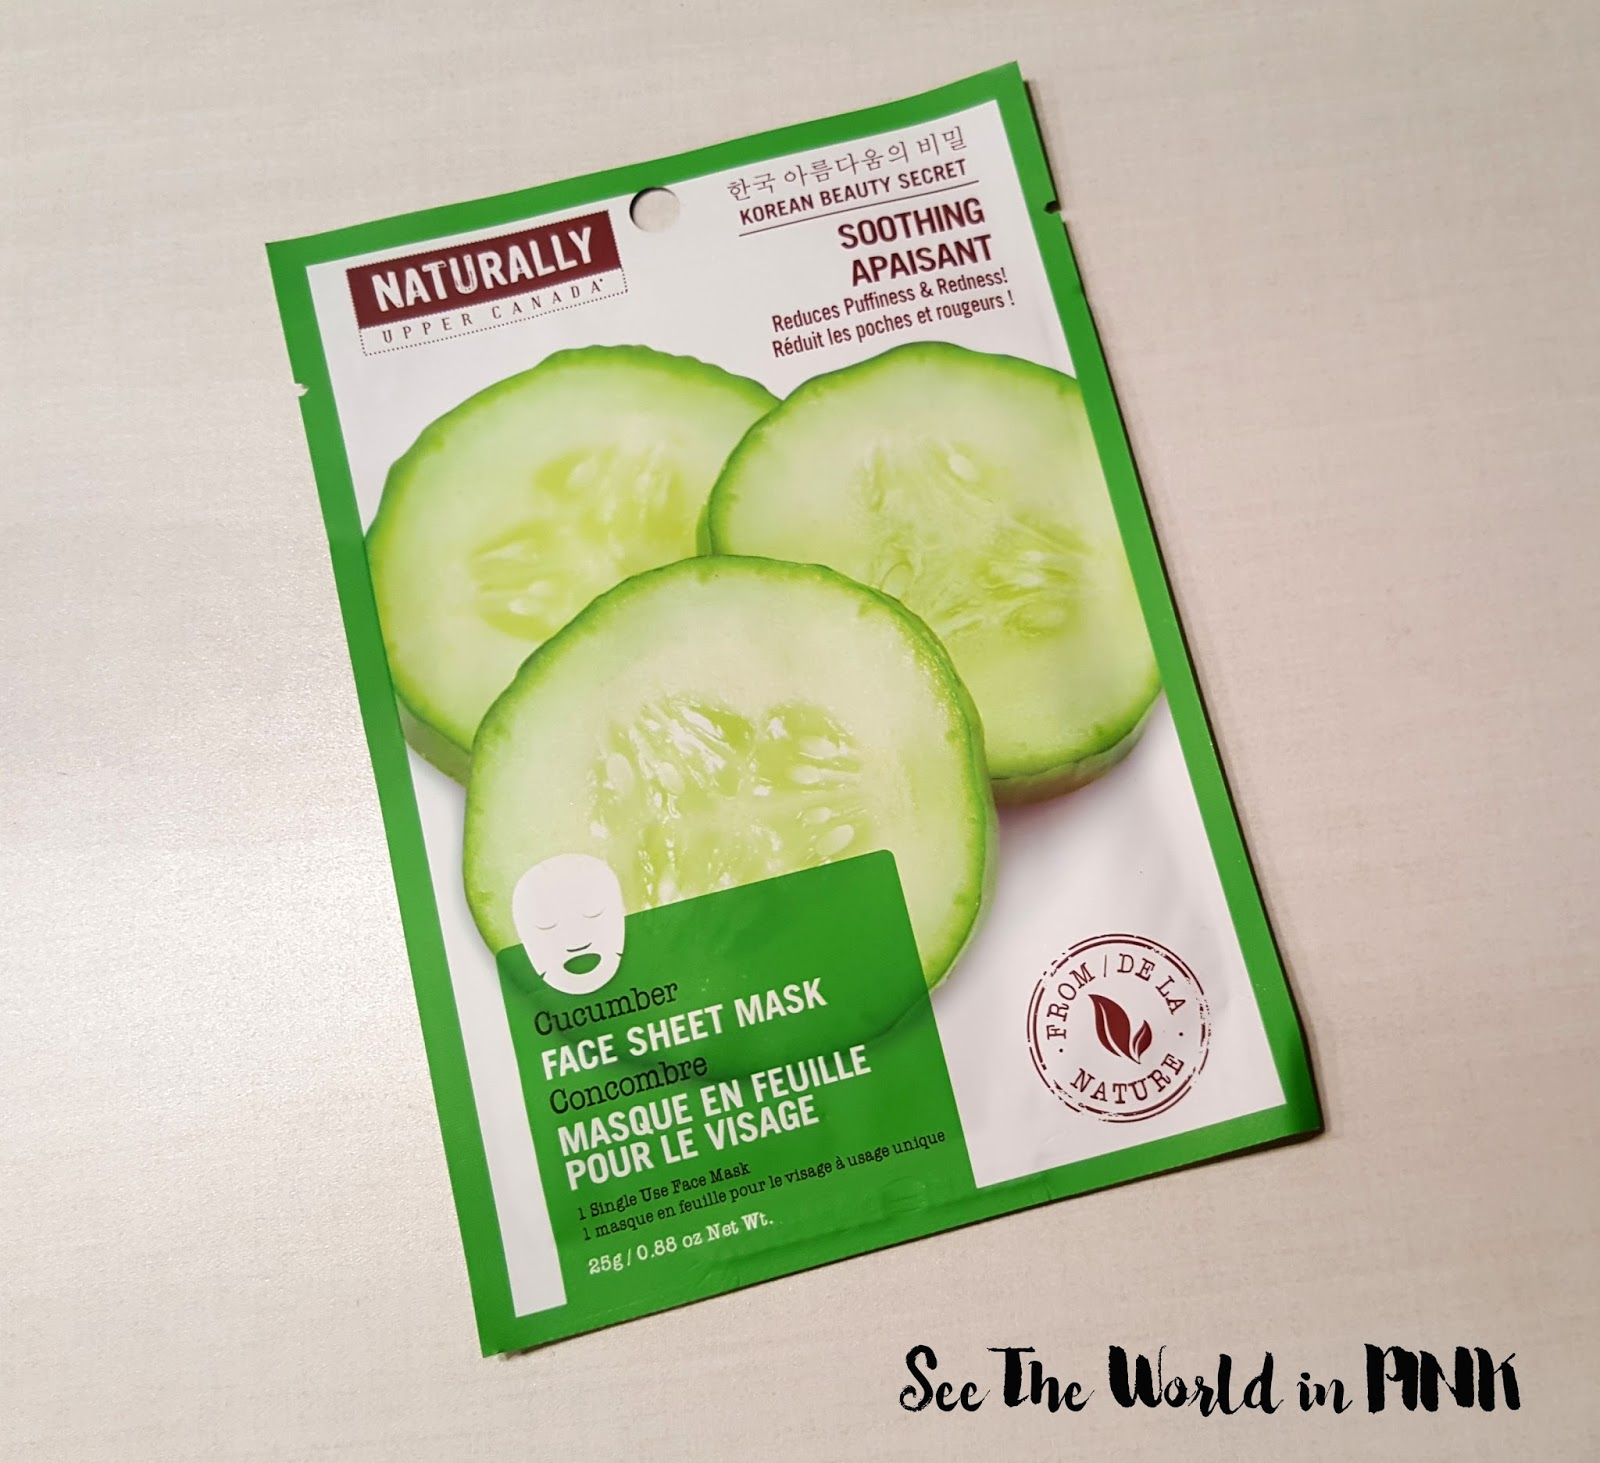 Upper Canada Naturally Face Sheet Mask Soothing Cucumber